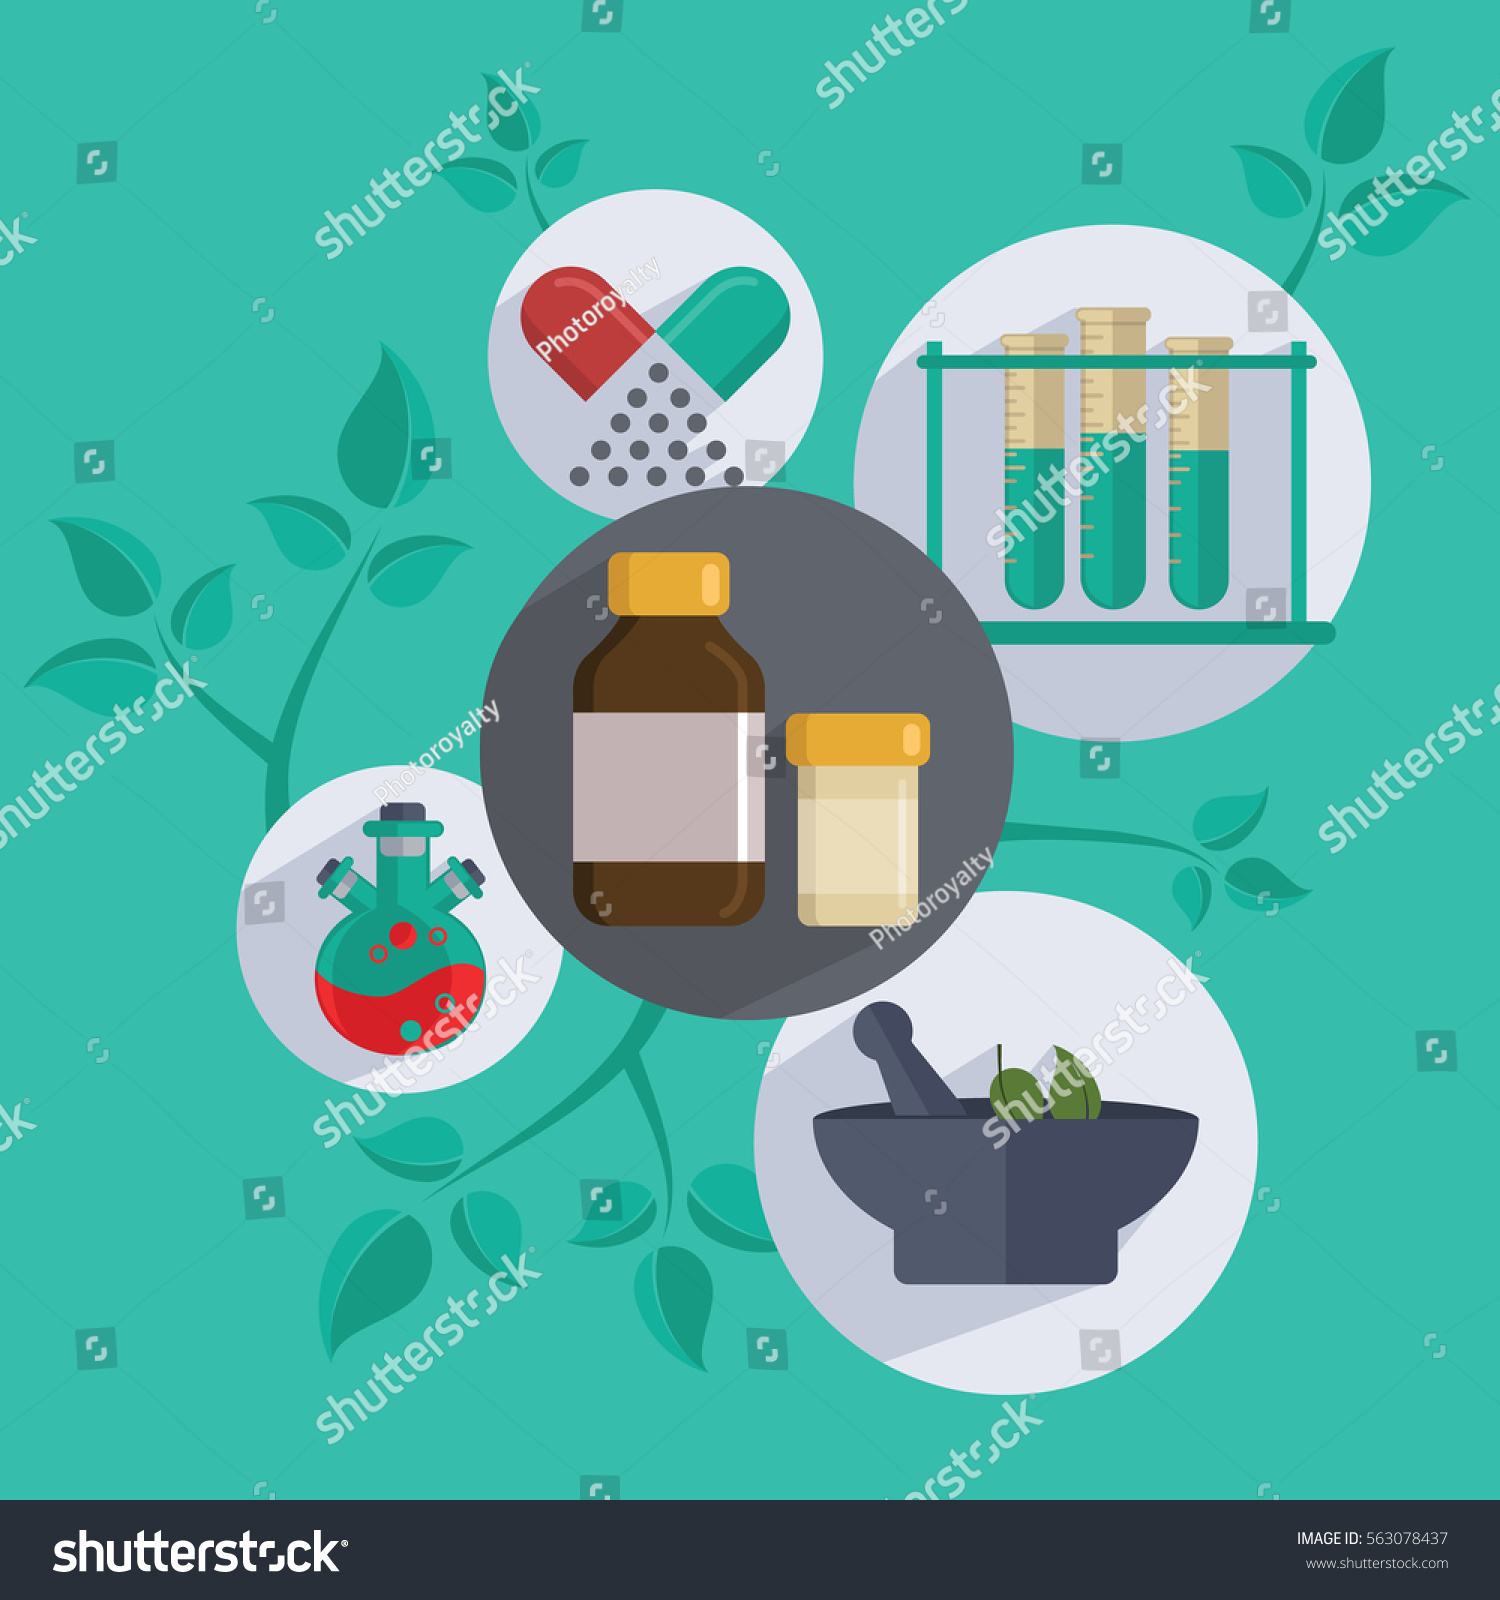 Center for holistic herbal therapy - Herbal Medicine Alternative Medicine Centre Vector Concept Holistic Center Naturopathic Medicine Homeopathy